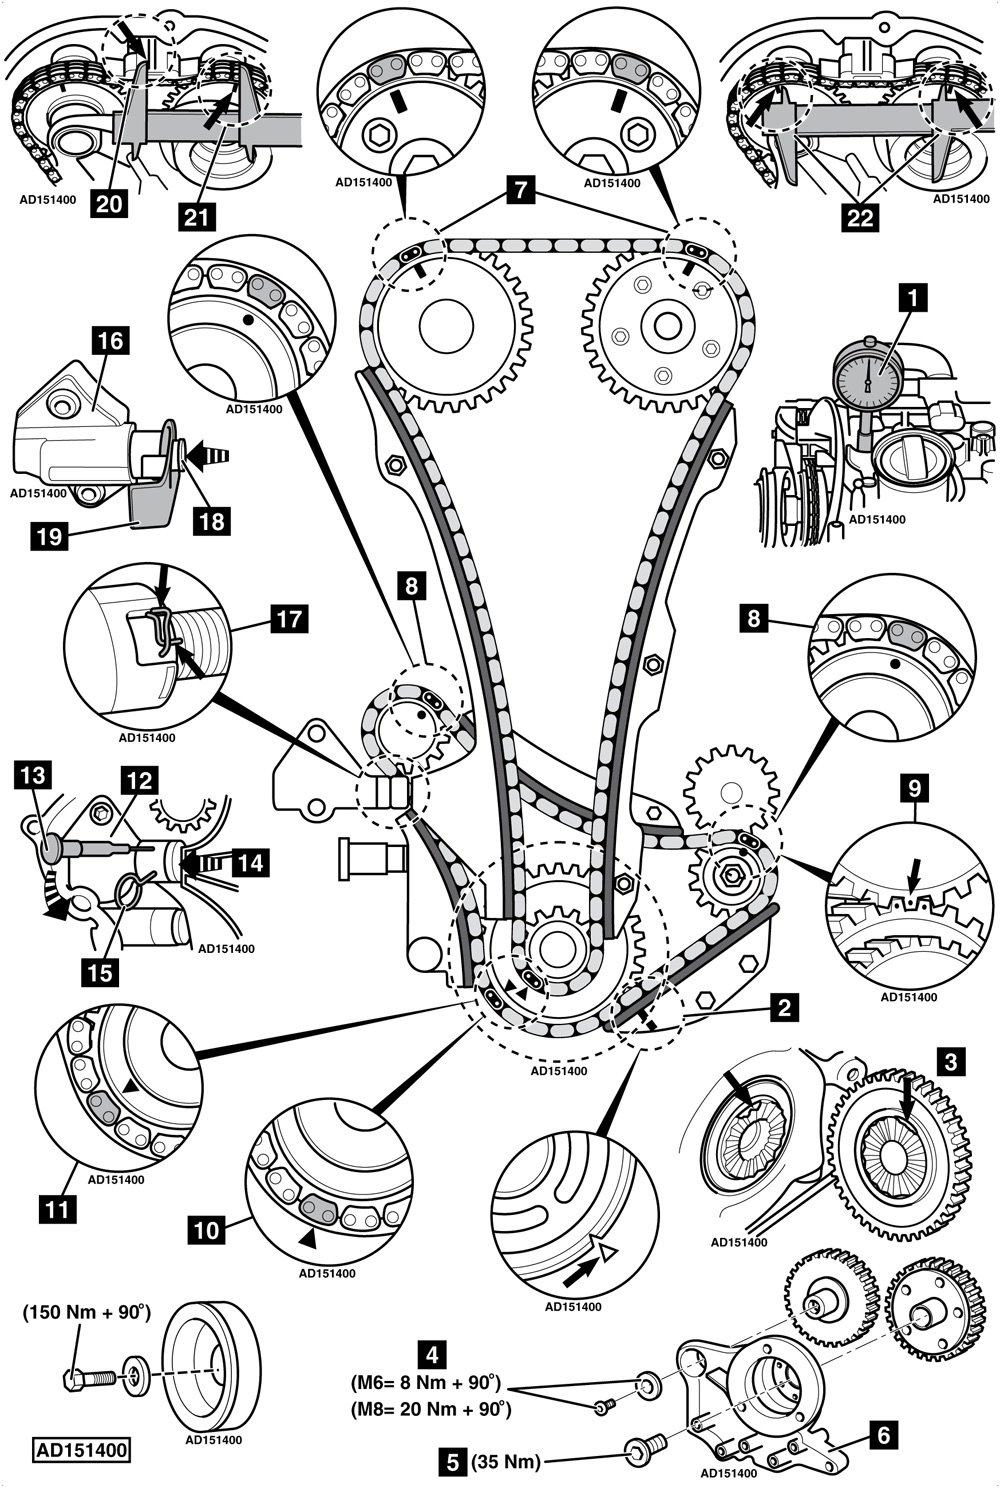 2006 Audi A3 20t The Oil Pressure Light Came On While Driving And A4 2 0t Engine Diagram 1e69013c 22b4 4775 A428 332283f2b0e0 Image